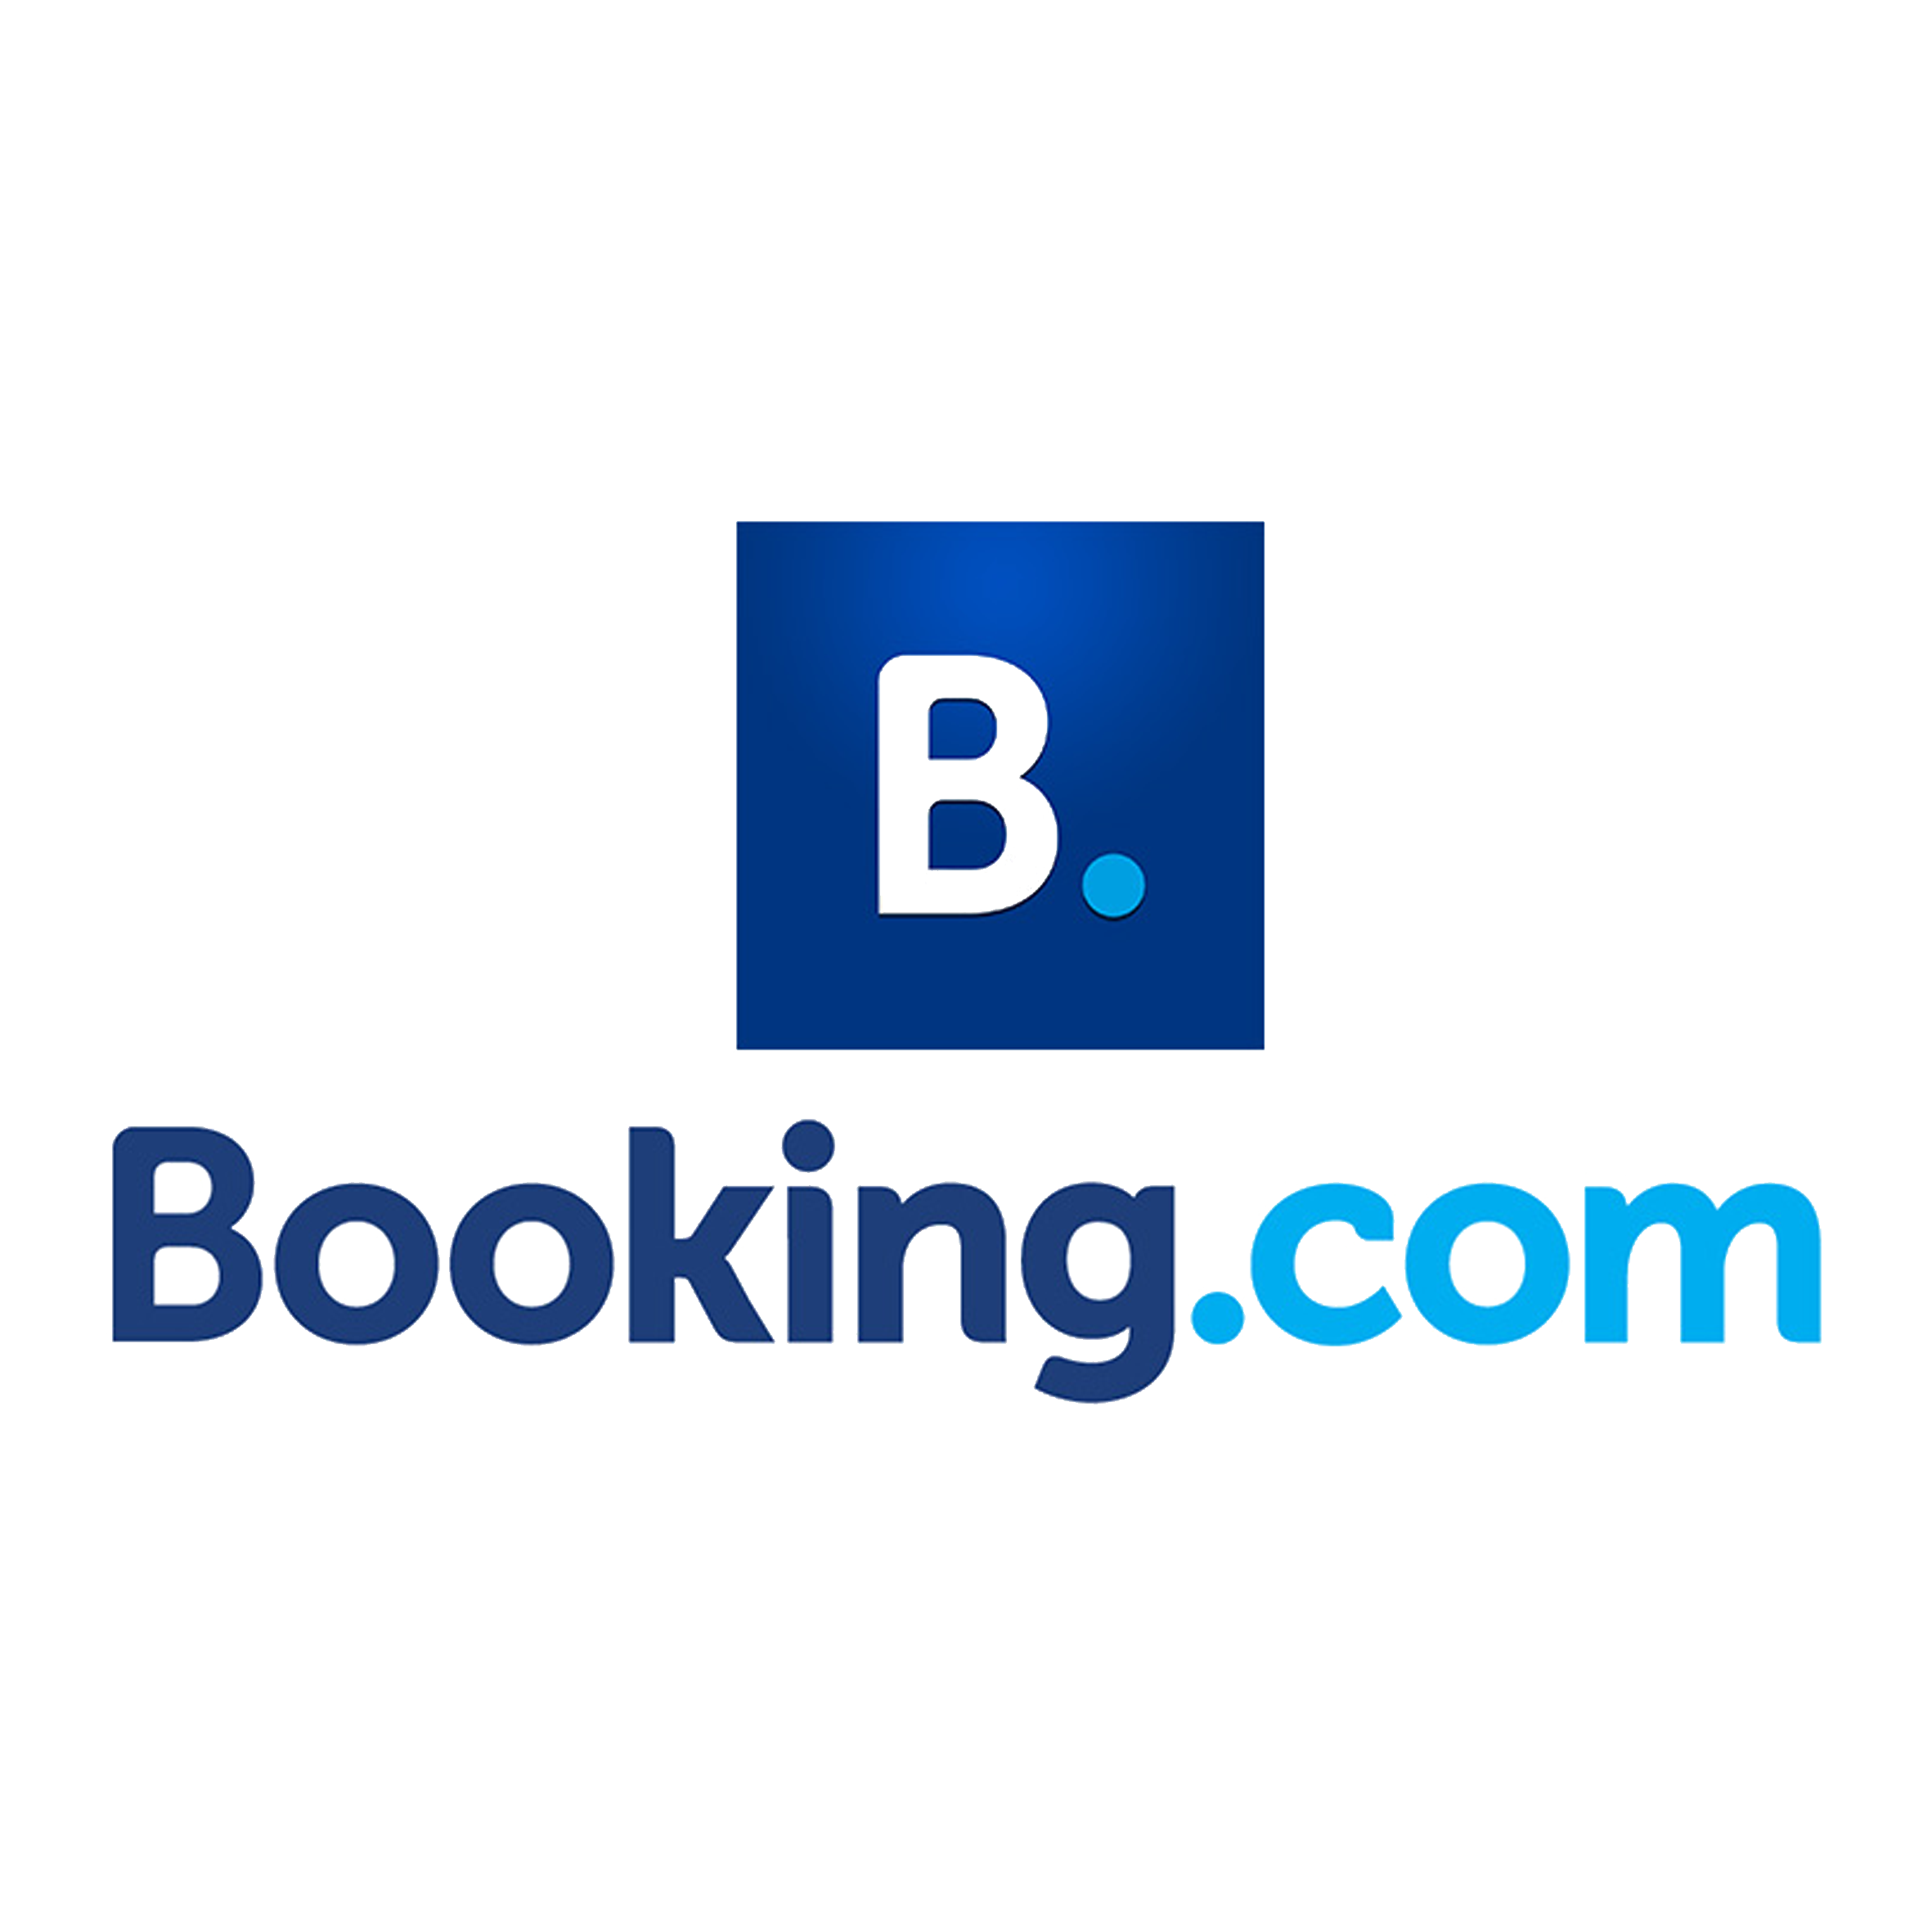 logo_booking